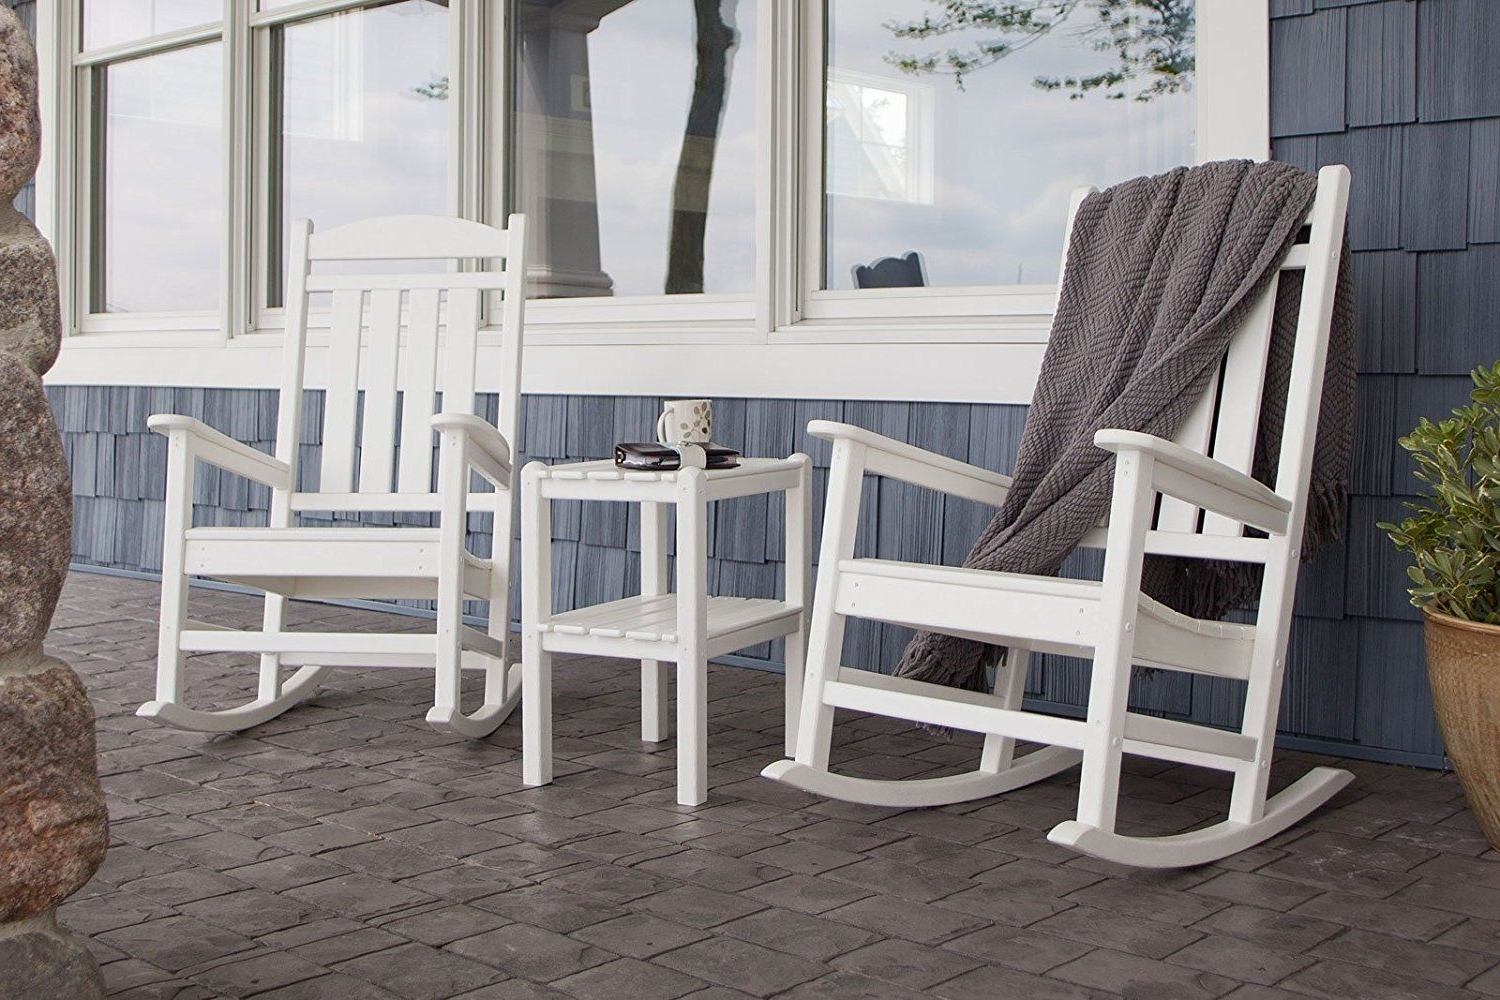 Amazon : Polywood R100wh Presidential Rocker, White : Rocking In Most Recent Outdoor Rocking Chairs With Table (View 5 of 15)